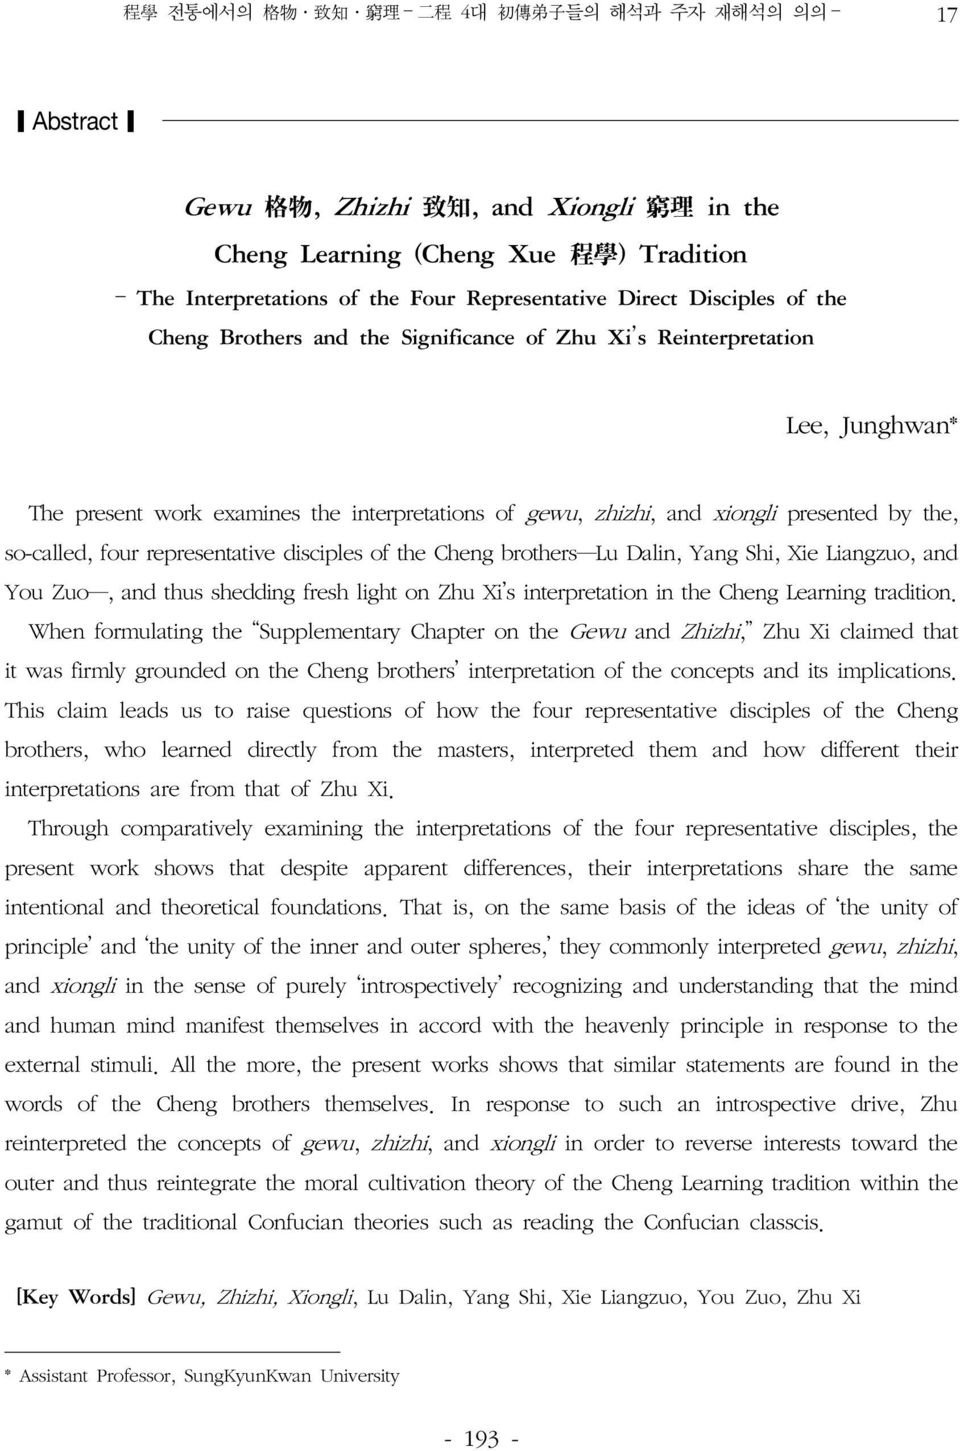 presented by the, so-called, four representative disciples of the Cheng brothers Lu Dalin, Yang Shi, Xie Liangzuo, and You Zuo, and thus shedding fresh light on Zhu Xi s interpretation in the Cheng